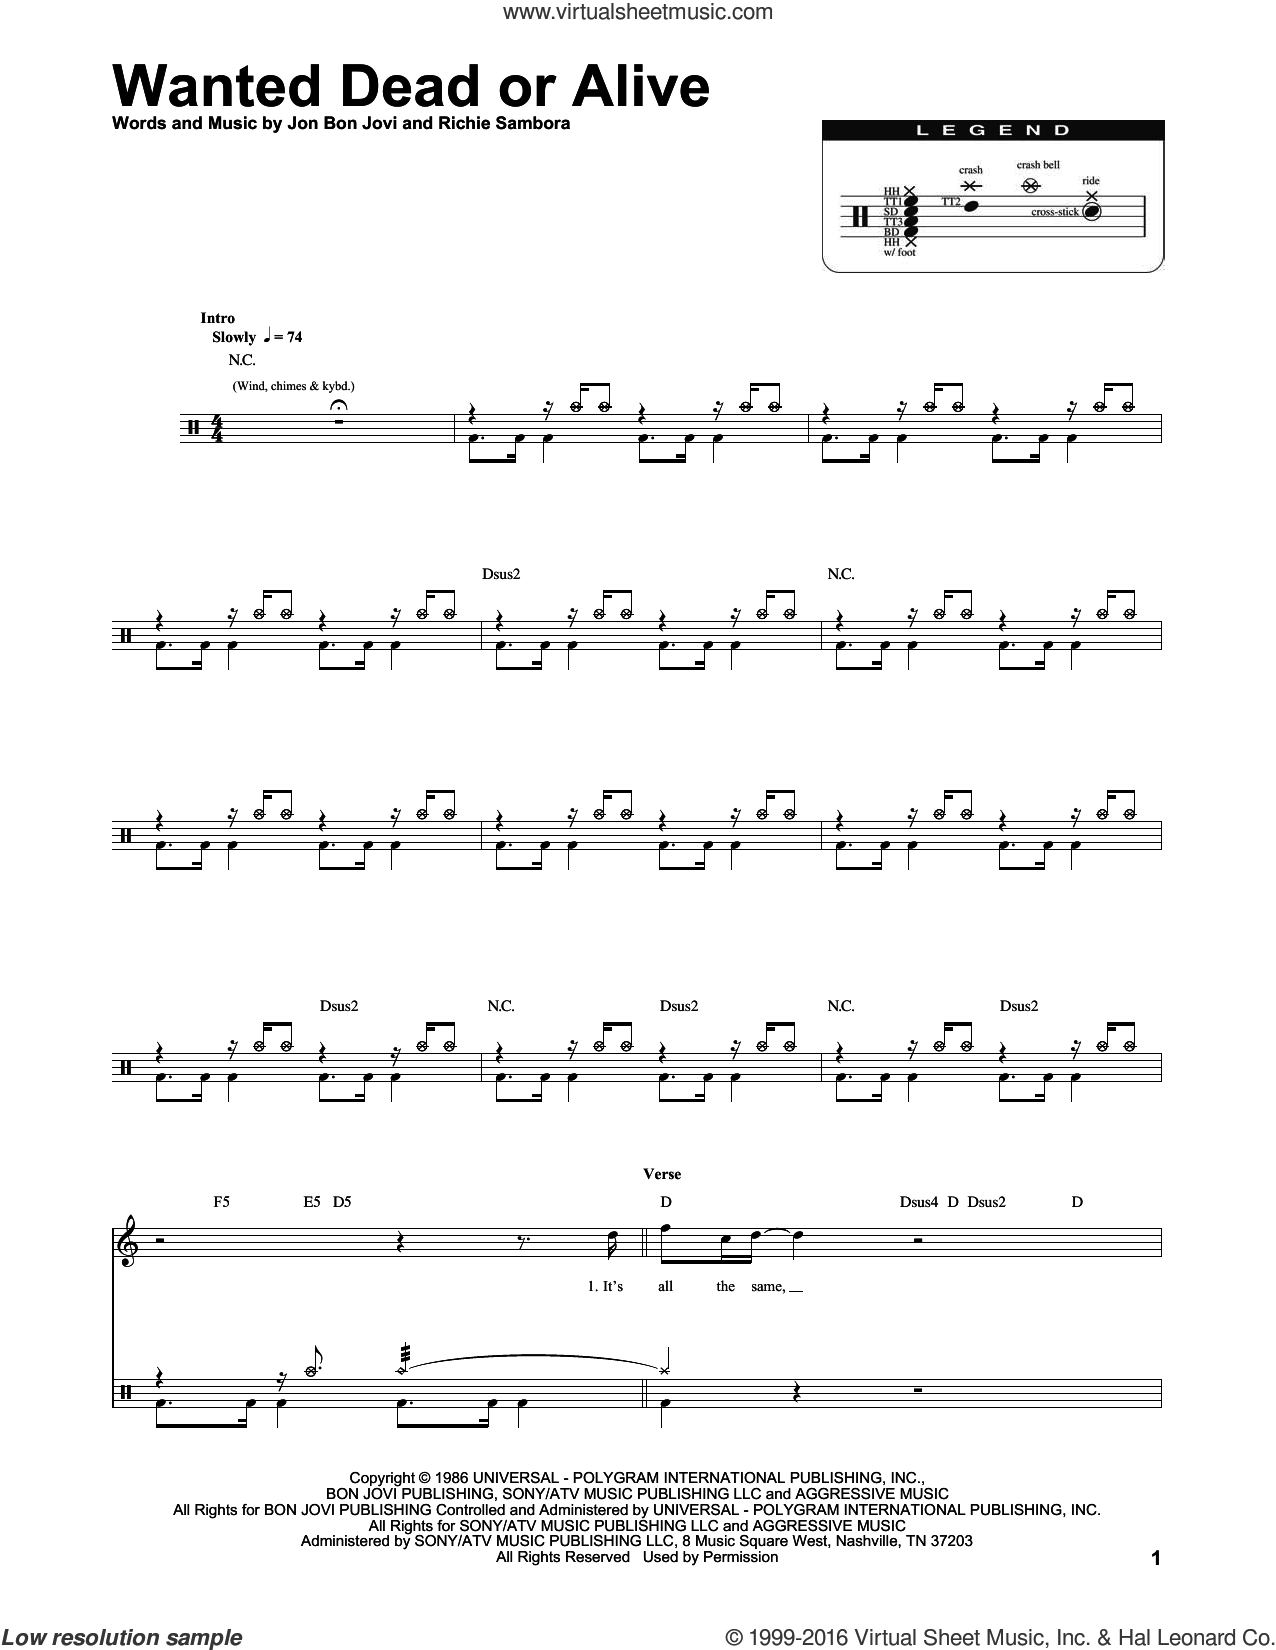 Wanted Dead Or Alive sheet music for drums by RICHIE SAMBORA, Chris Daughtry and Bon Jovi. Score Image Preview.